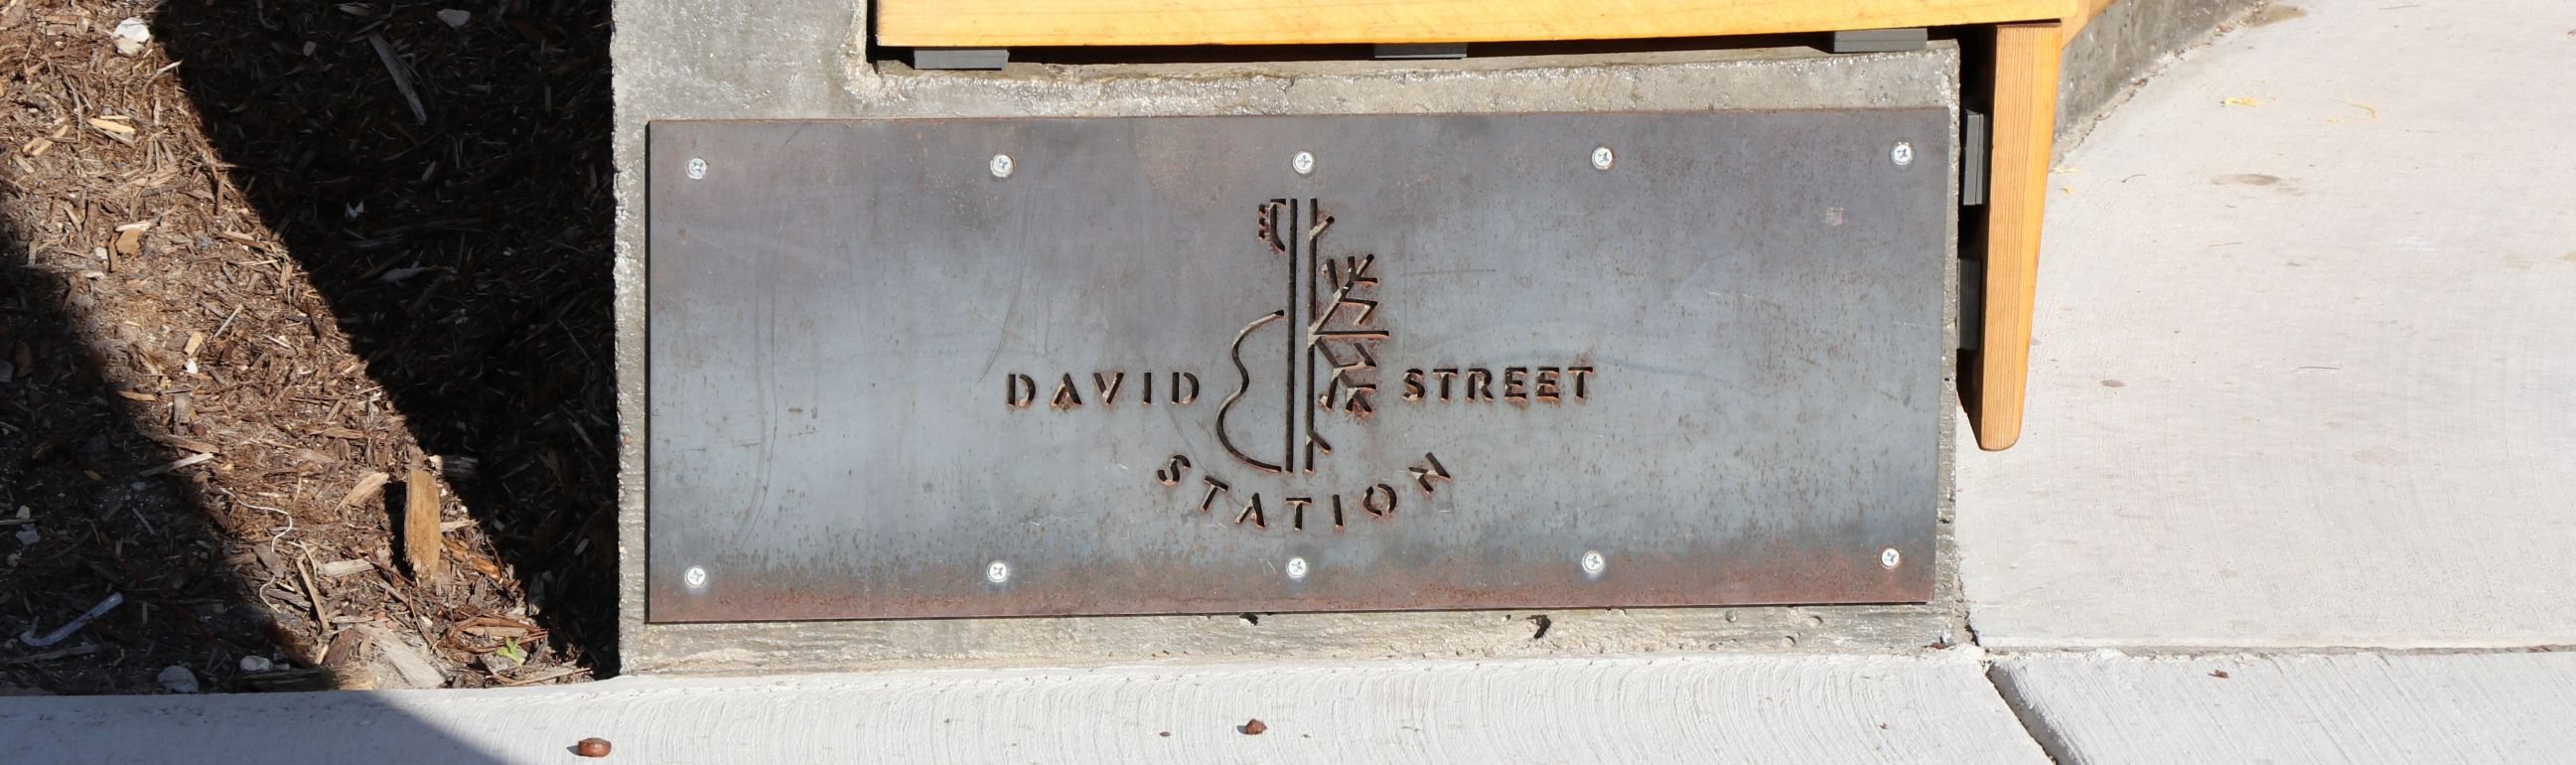 David Street Station Plaque